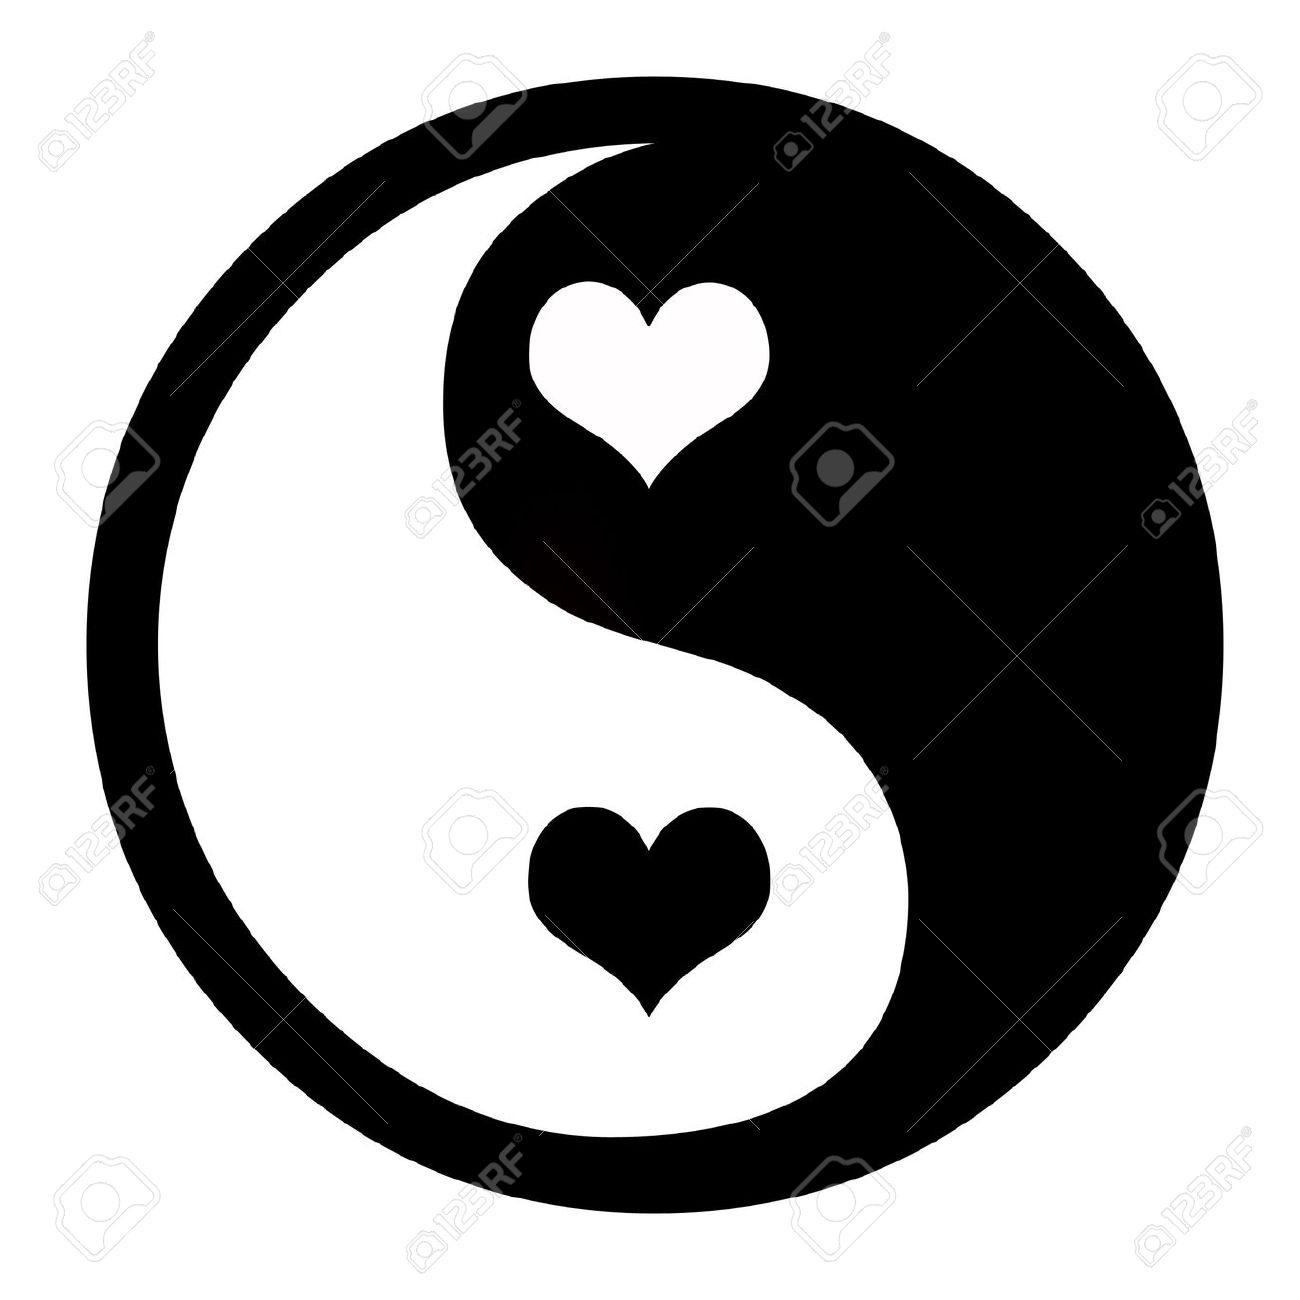 1300x1300 Asian Yin Yang Symbol With Hearts, Coceptual Background Stock